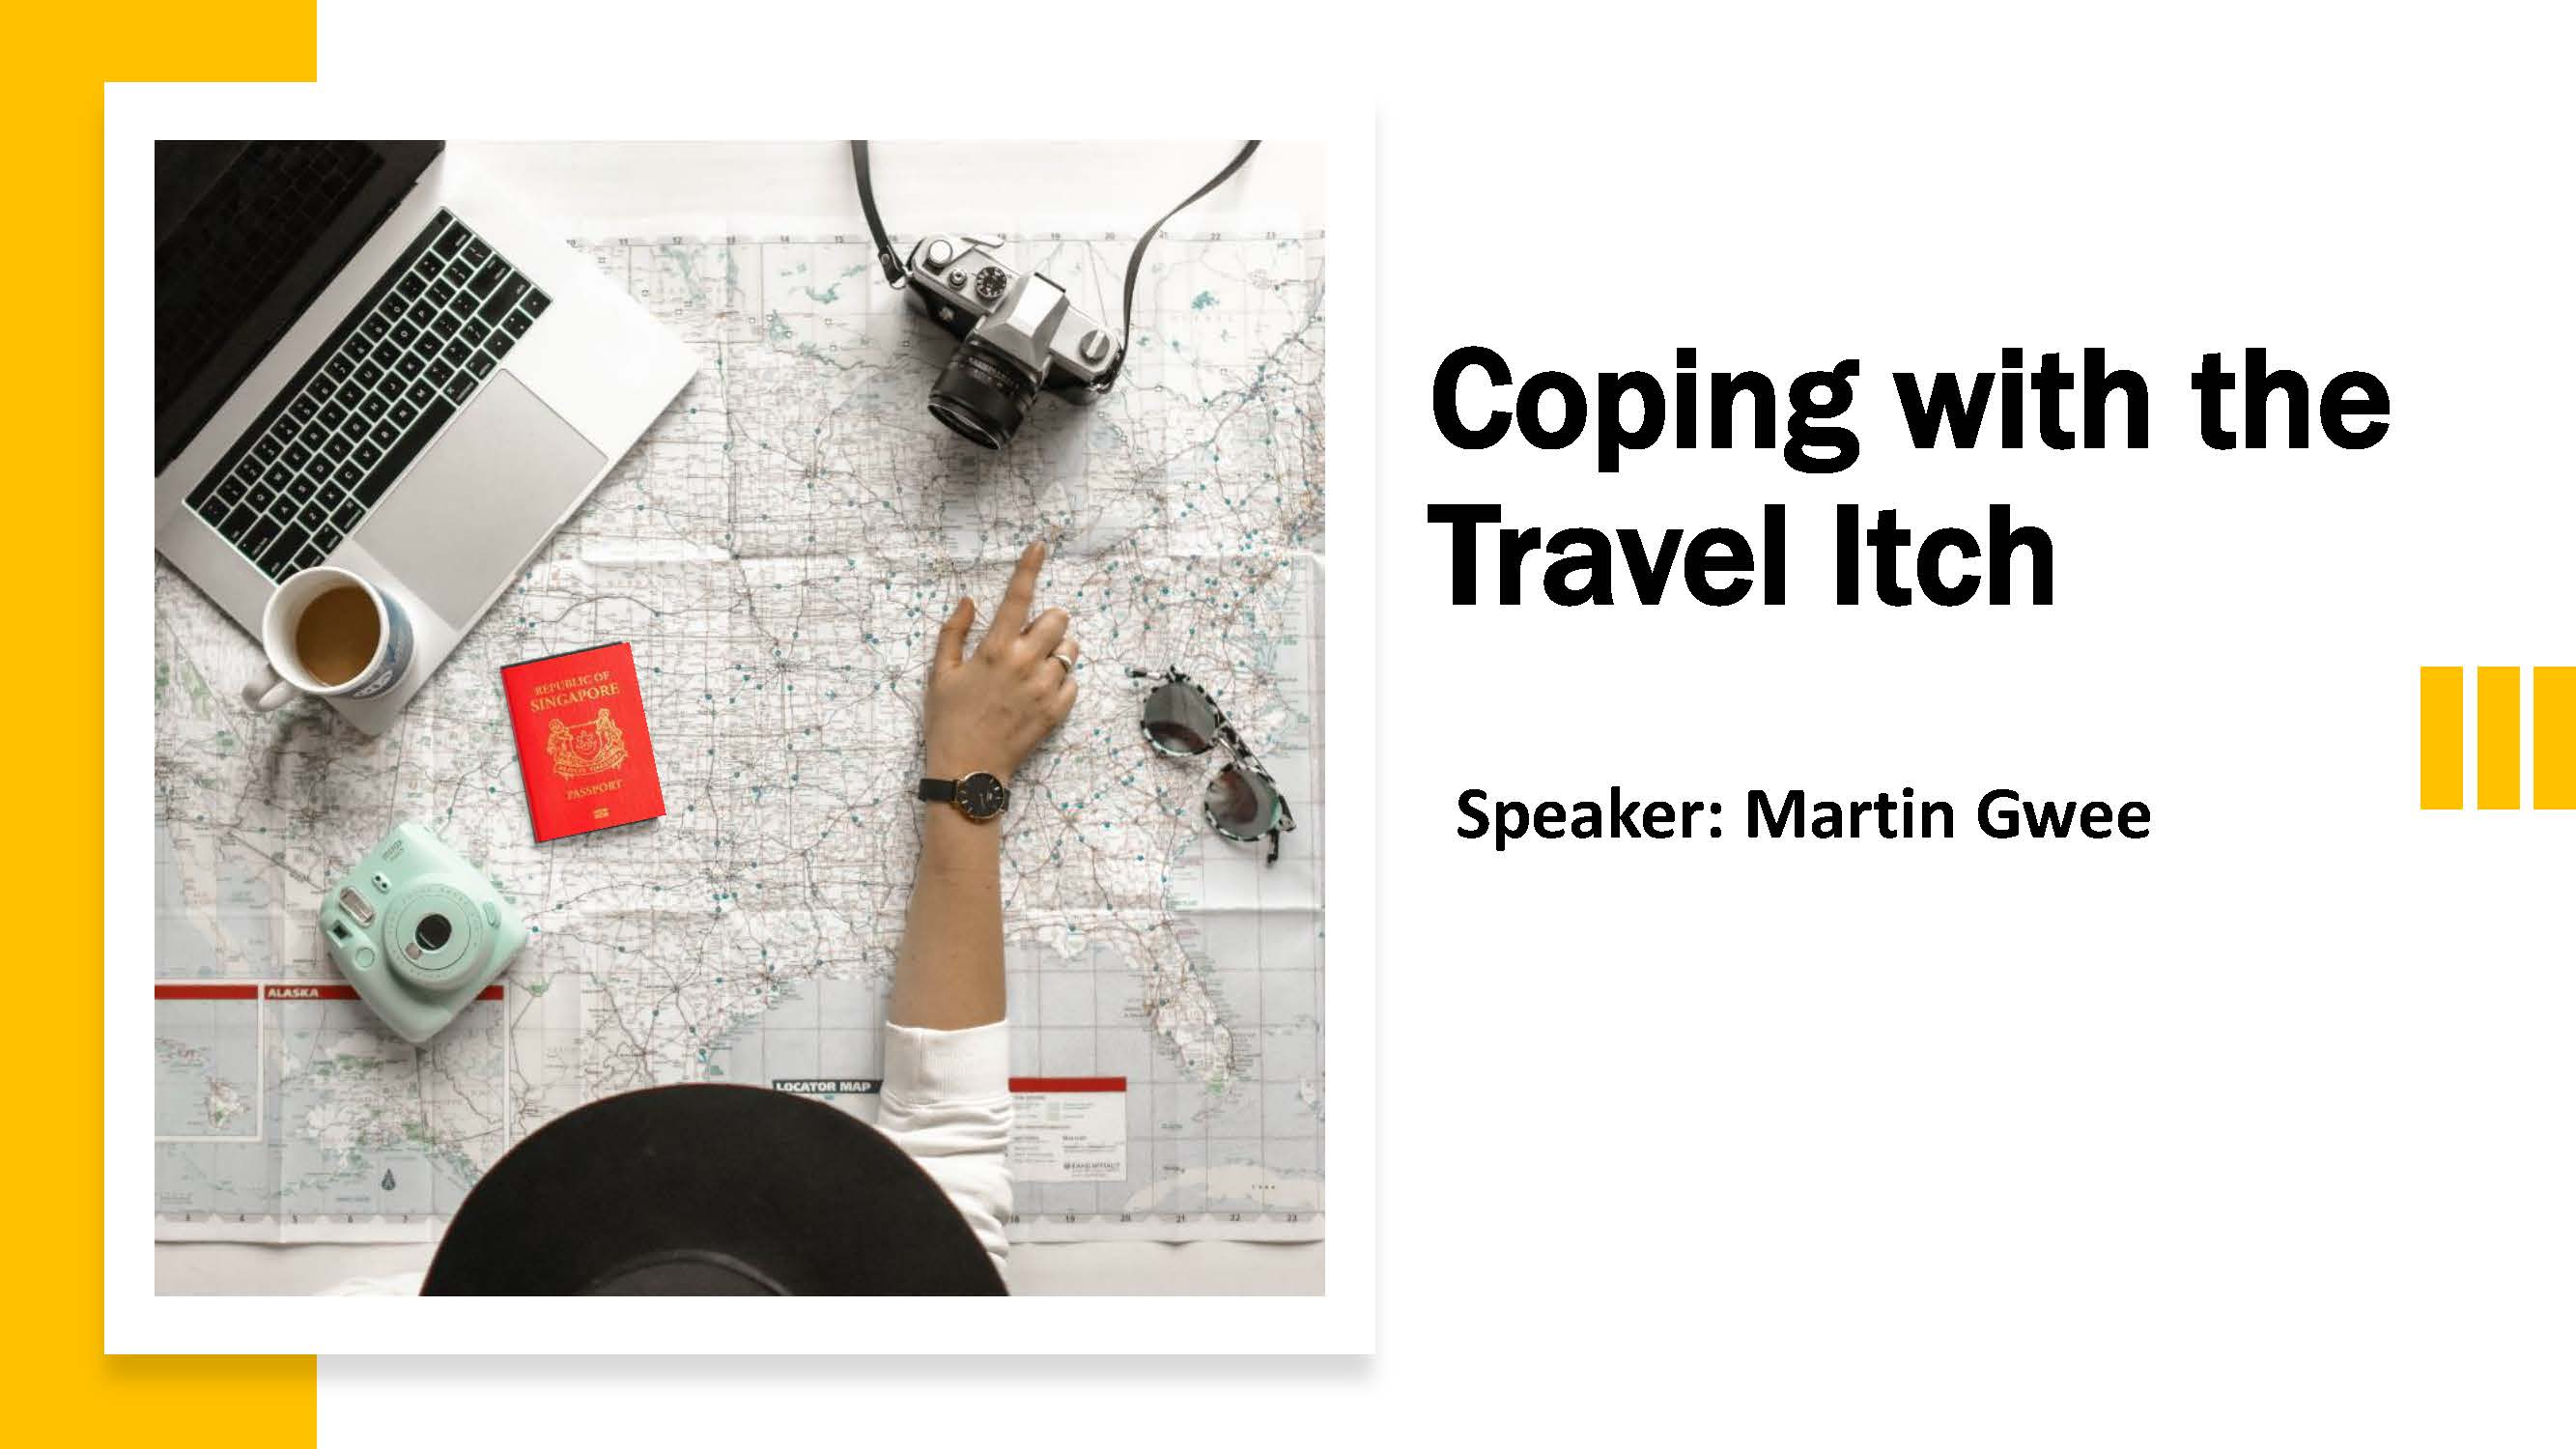 Coping with Travel Itch